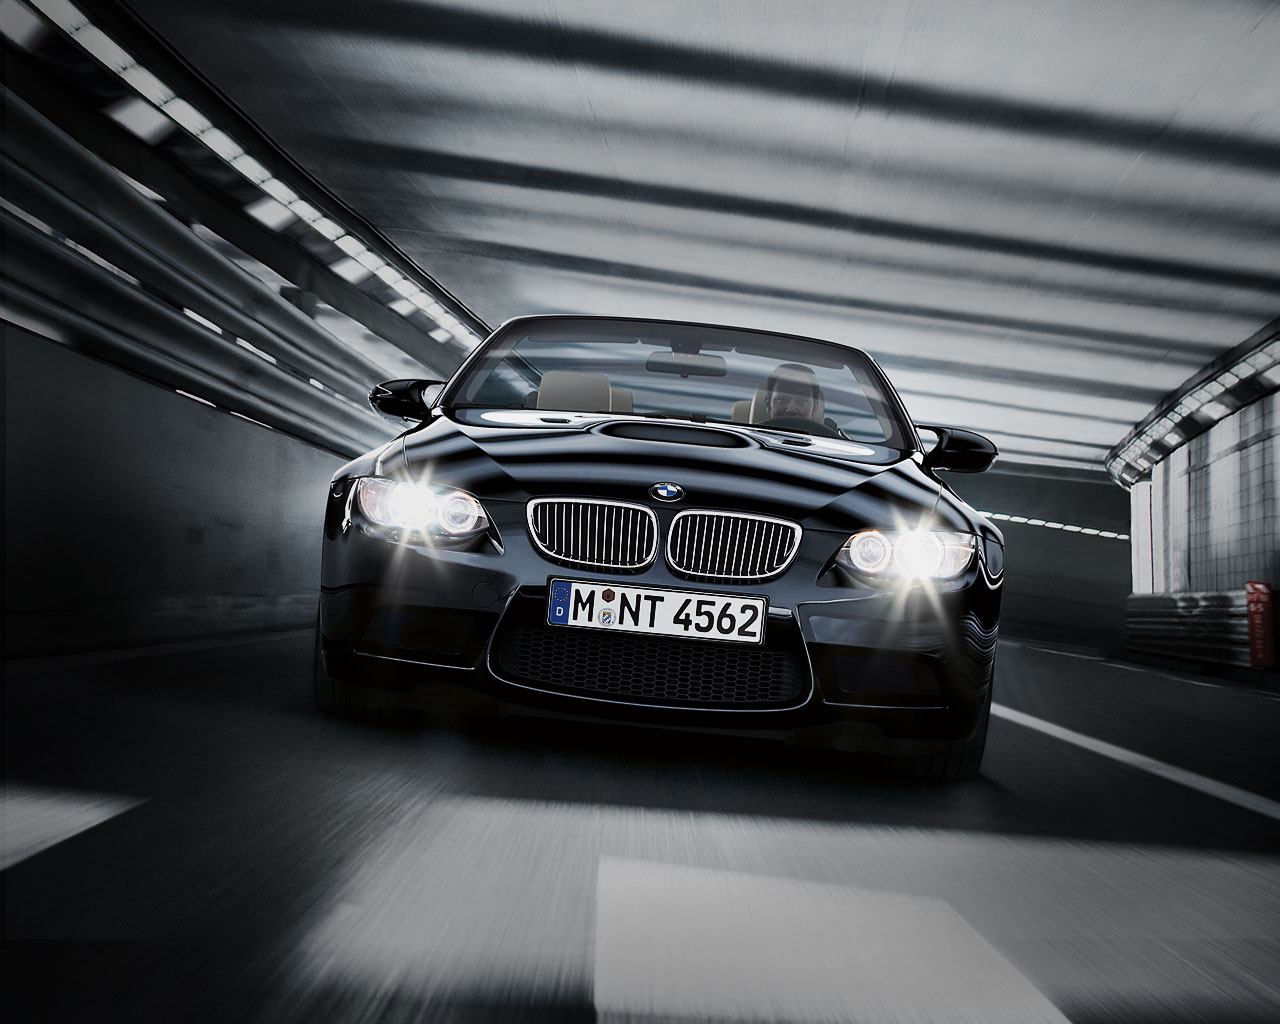 Bmw M3 | bmw M3 Wallpapers | Bmw Wallpaper M3 | bmw m3 Wallpaper | m3 ...